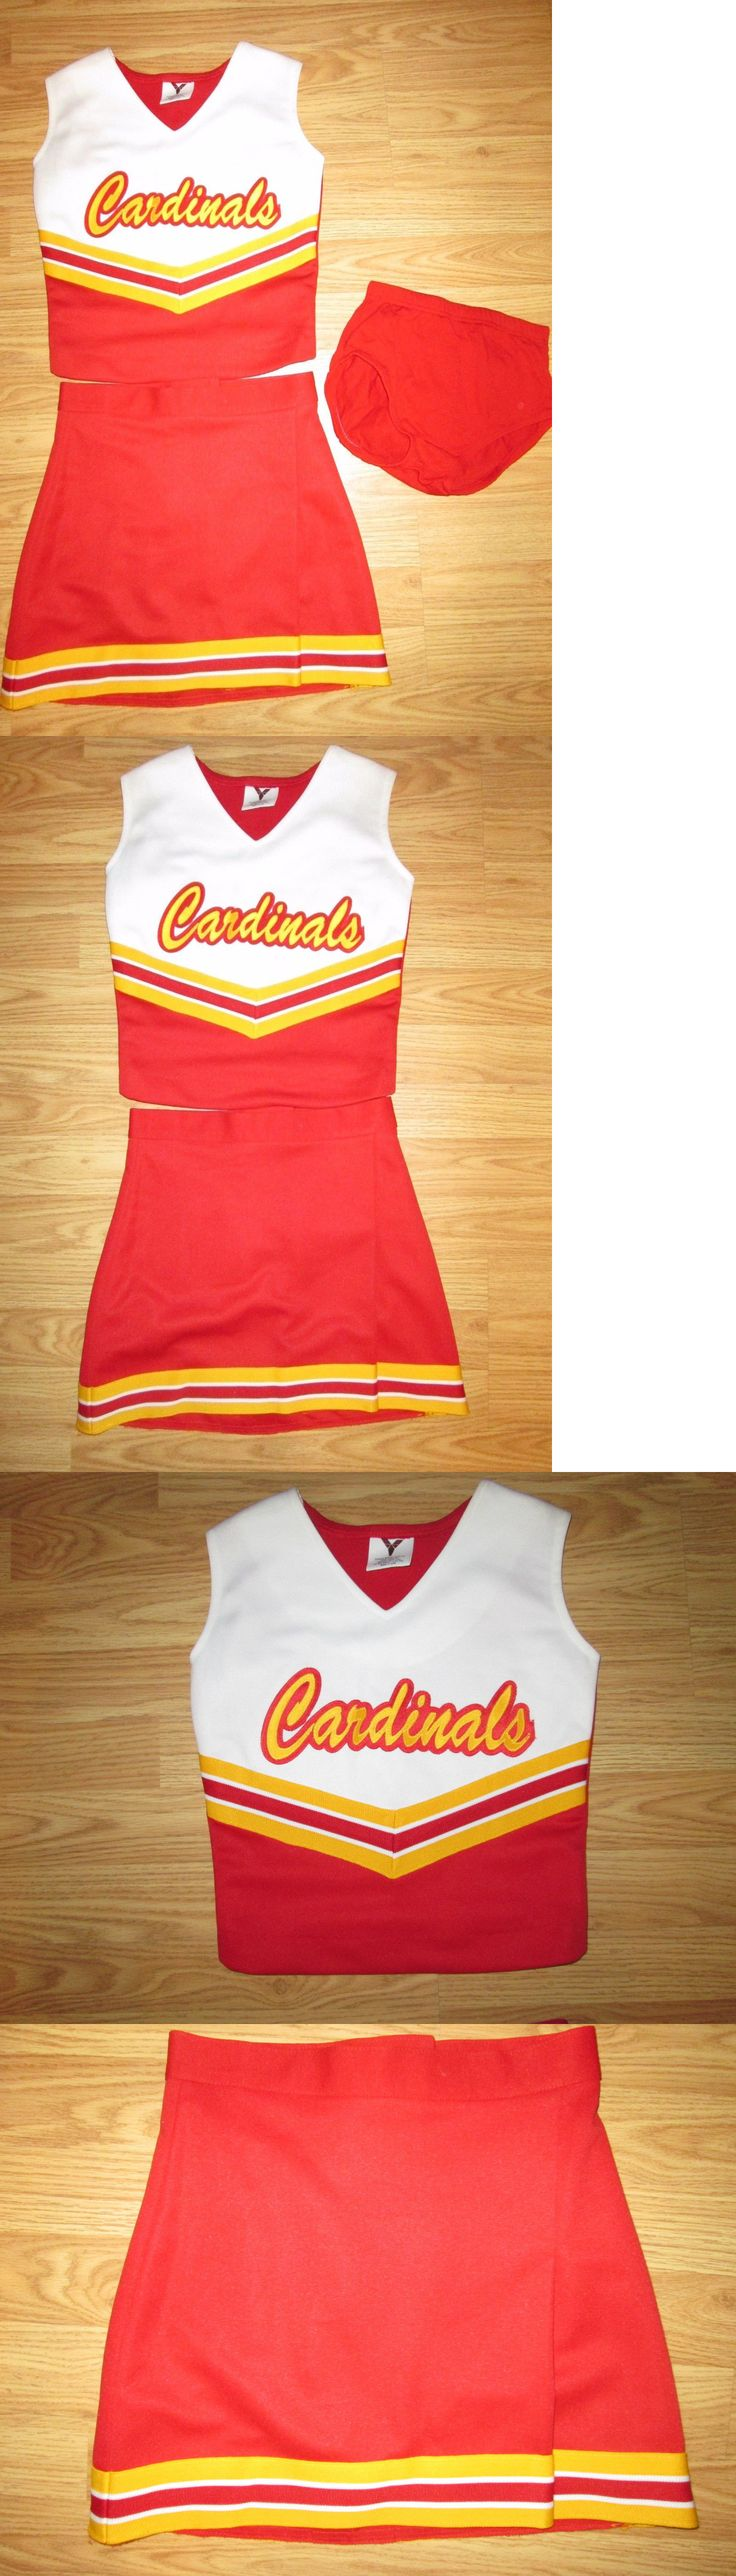 Cheerleading 66832: Cardinals Cheerleader Uniform Outfit Costume + Briefs 30/24 Teen Youth Sized BUY IT NOW ONLY: $36.0